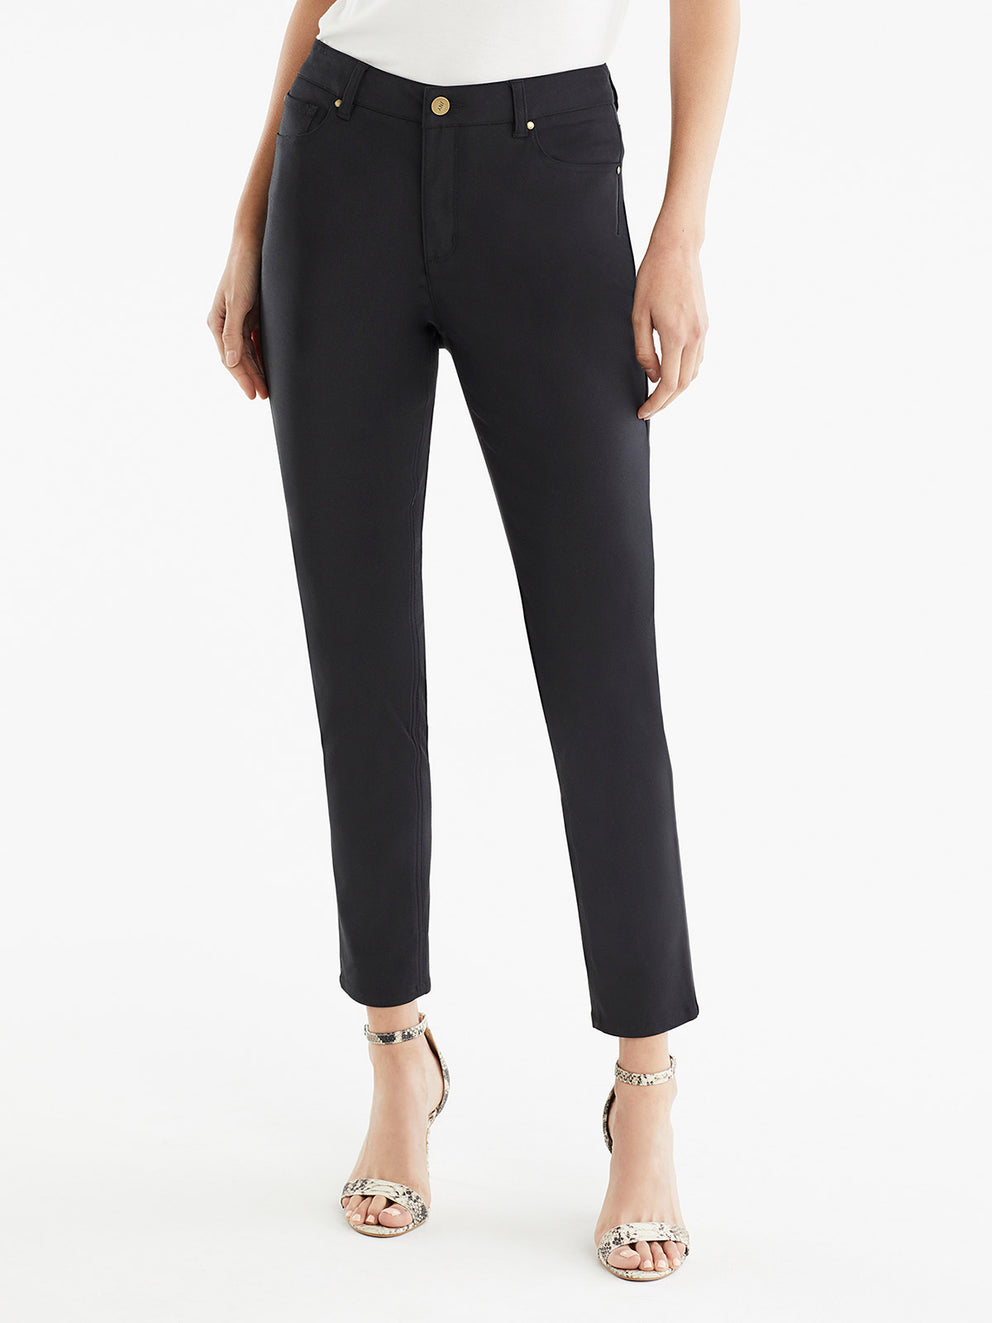 The Jones New York Lexington Skinny Ankle Jeans in color Black - Image Position 1